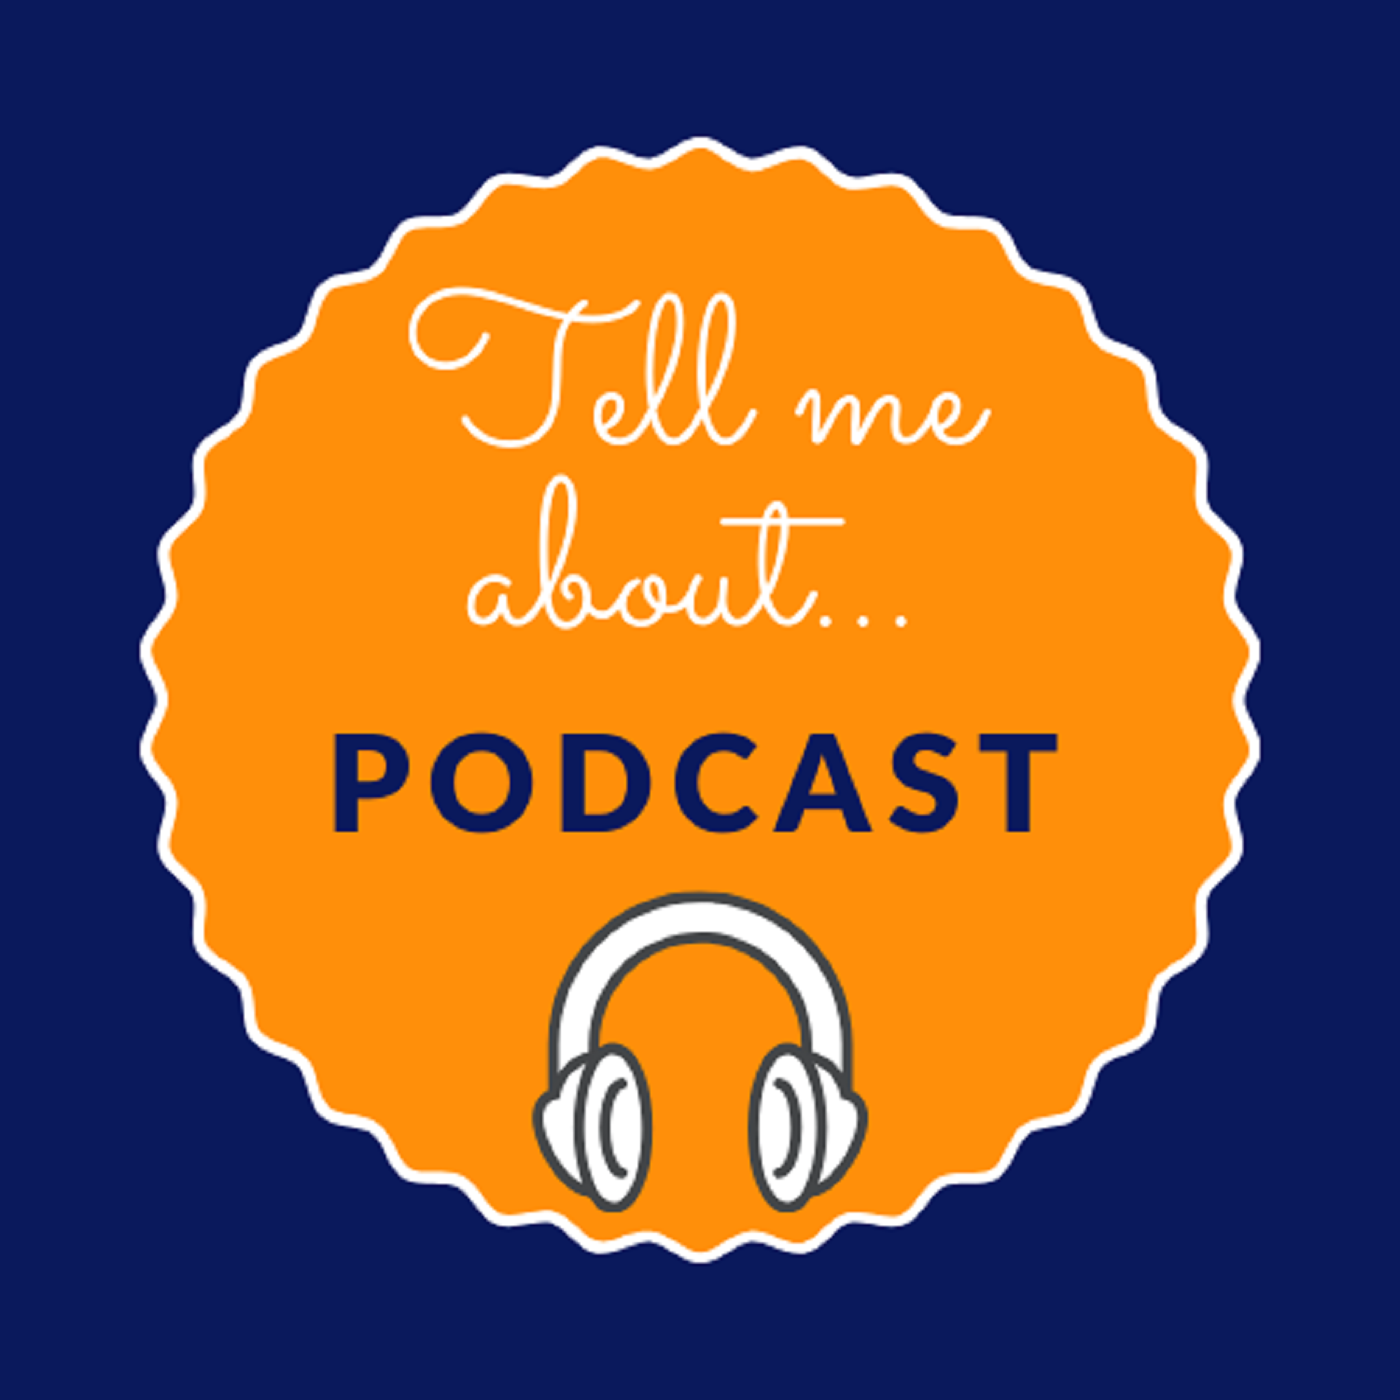 Tell Me About Podcast